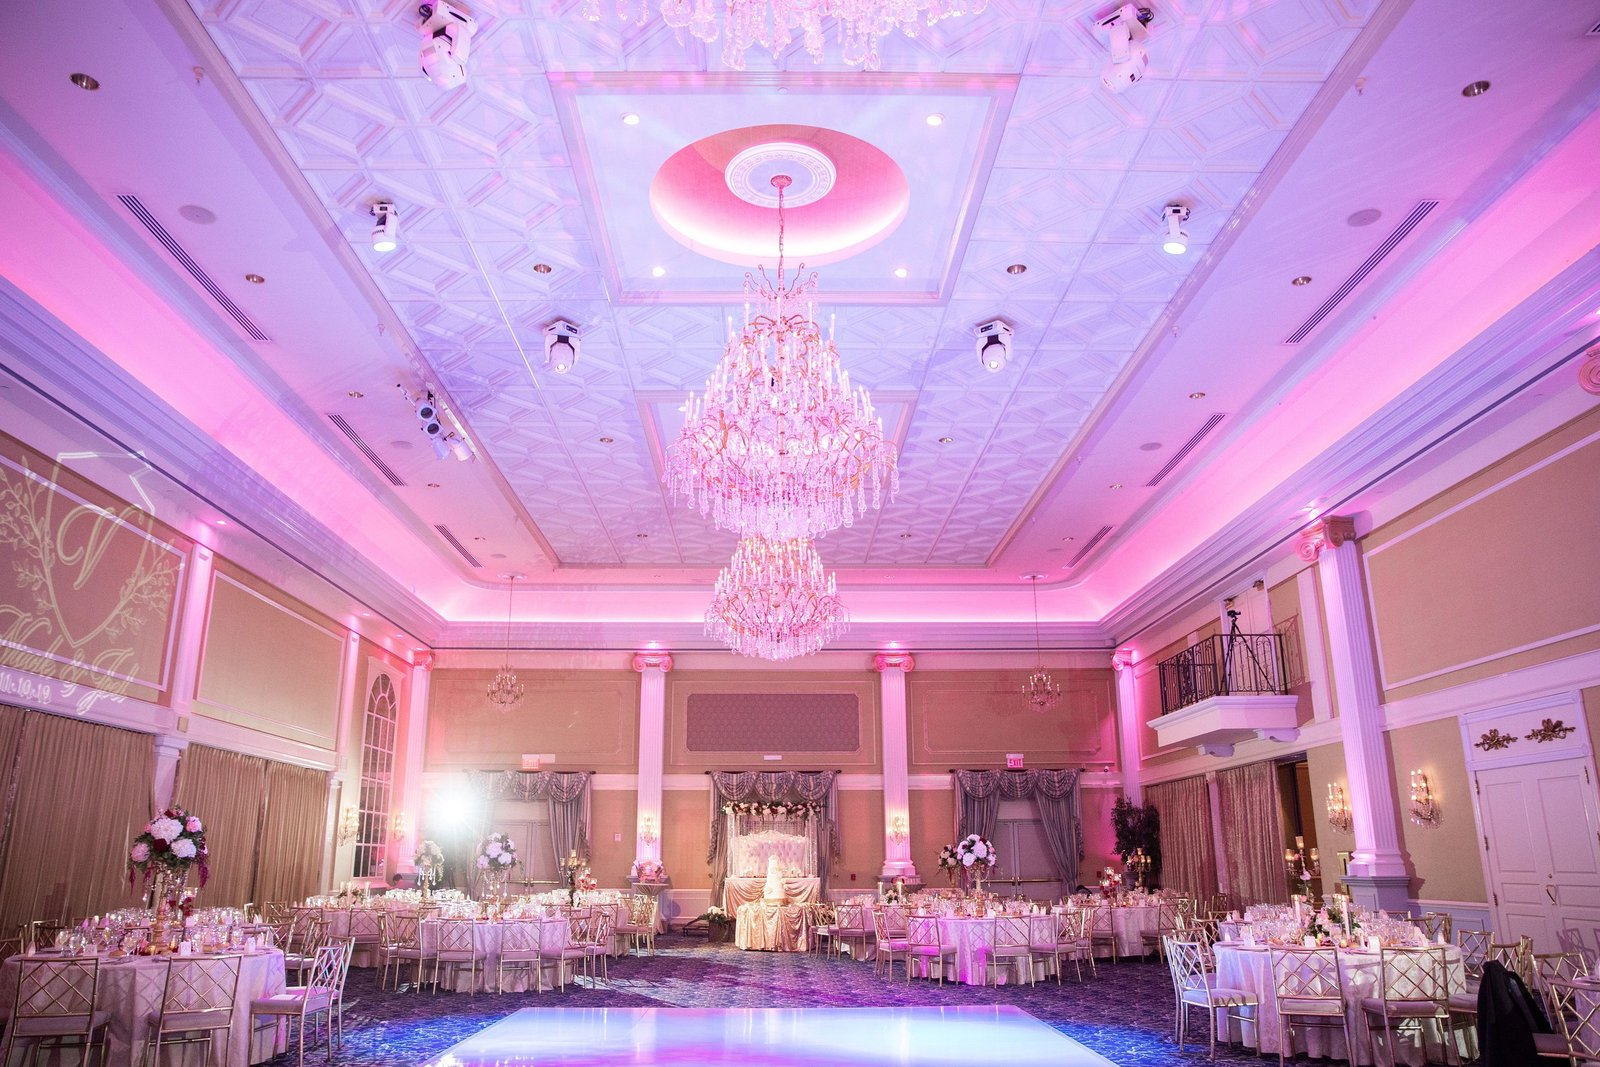 East Ballroom at The Palace